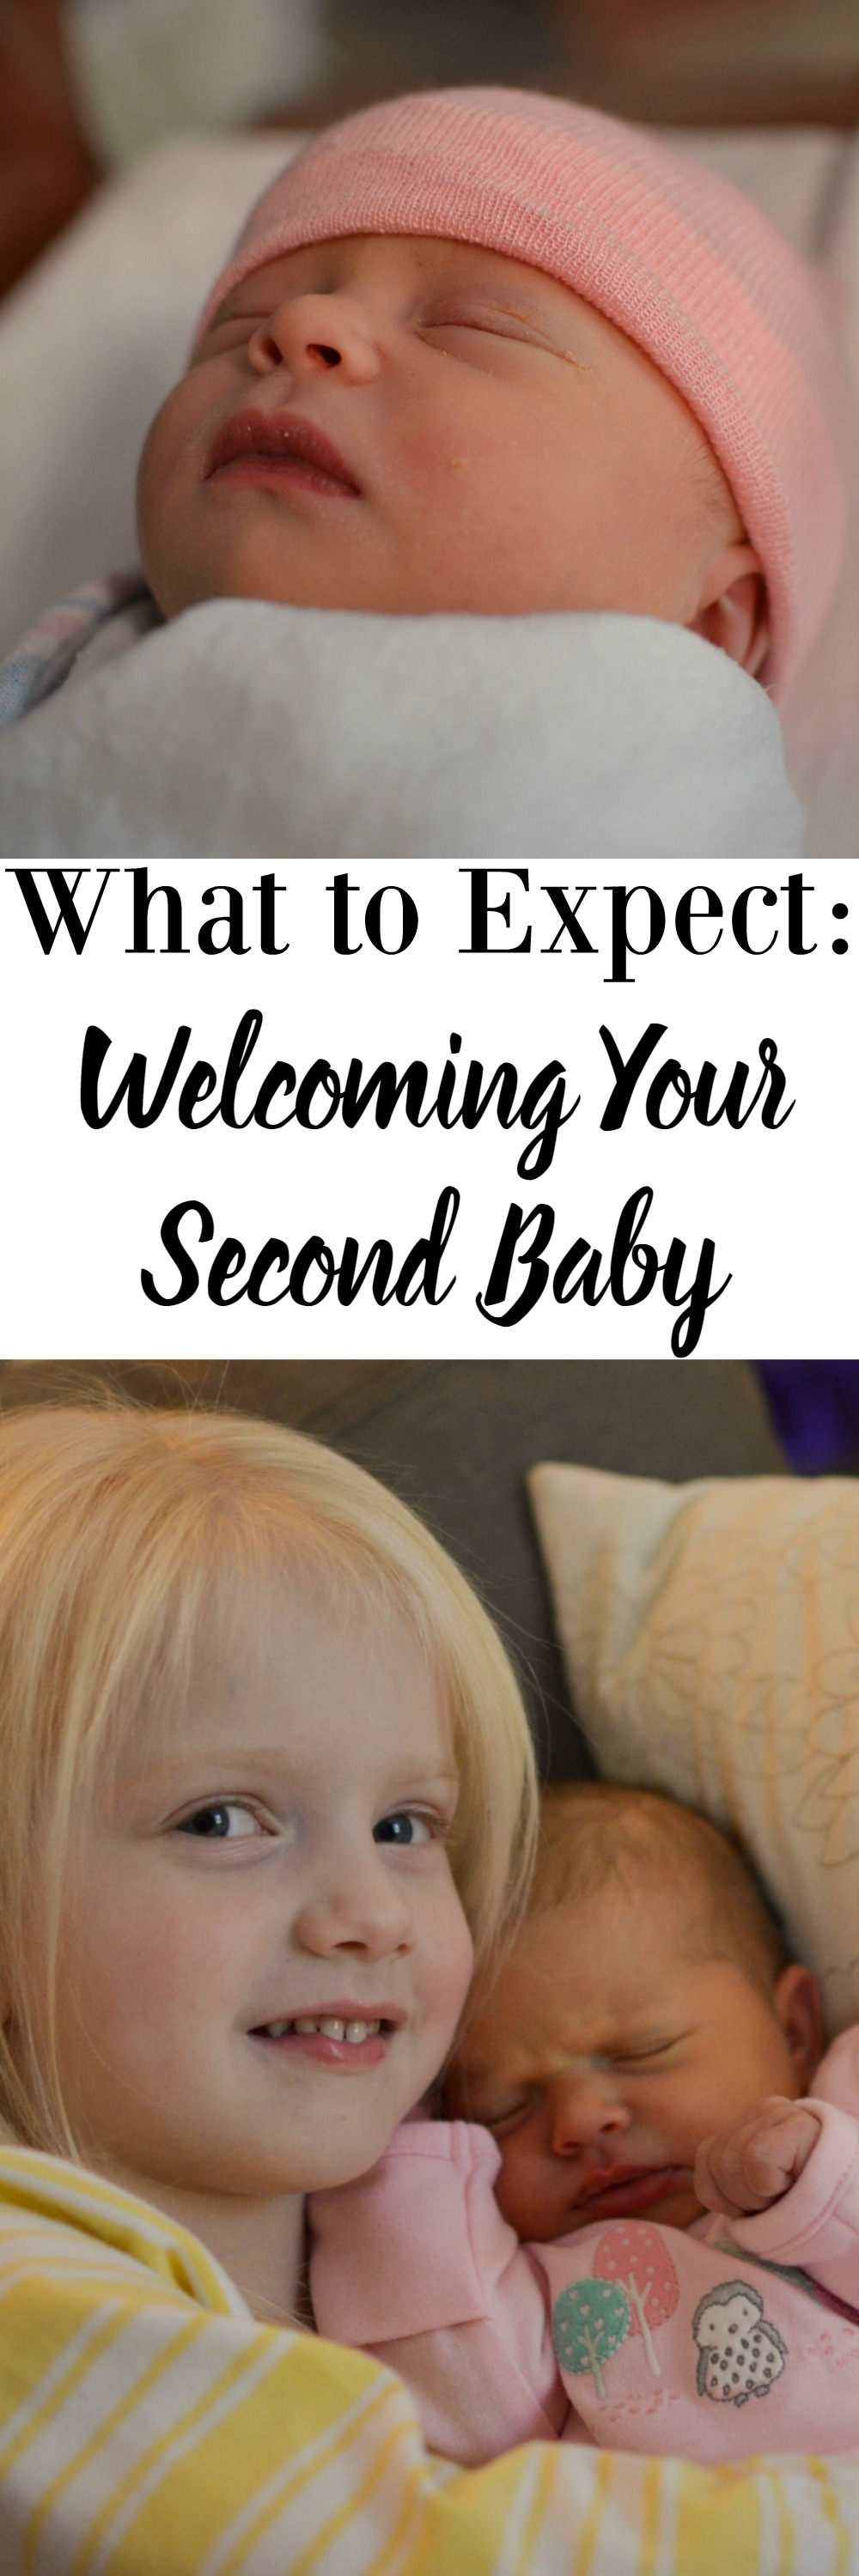 what-to-expect-when-welcoming-your-second-baby-2